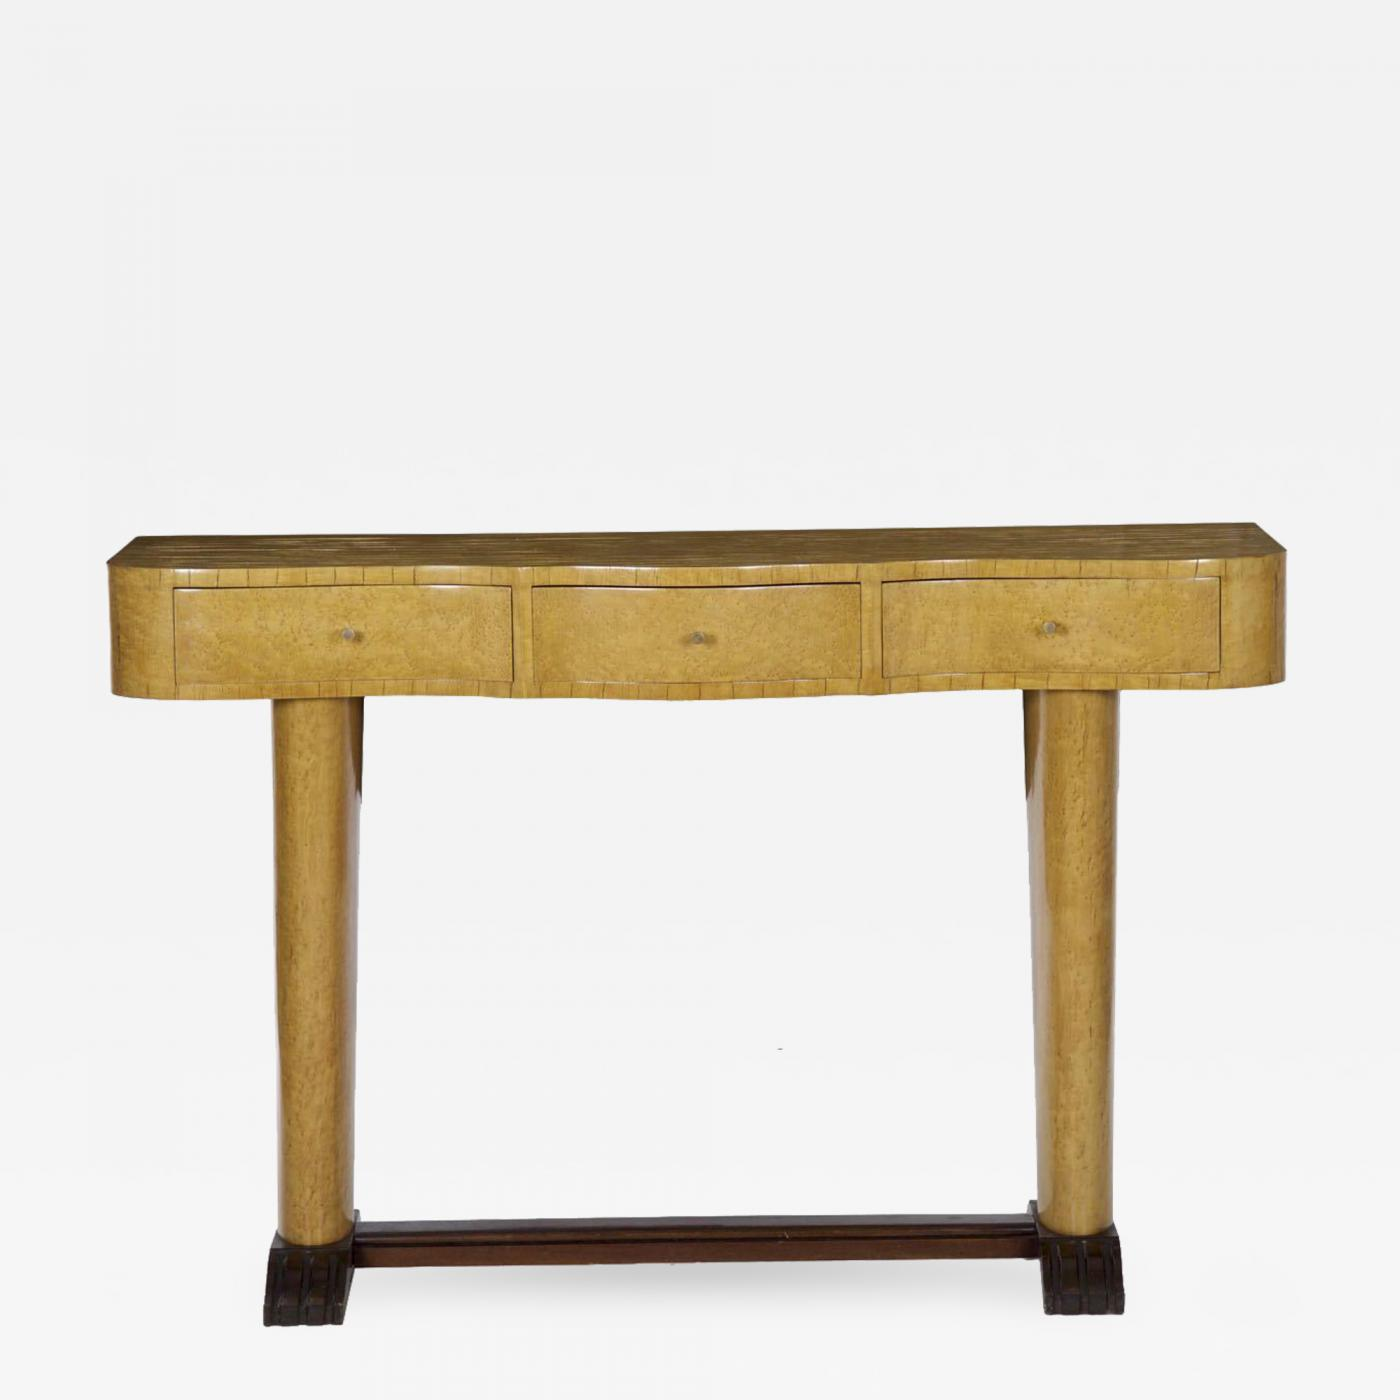 Art deco period furniture Medieval French Listings Furniture Tables Console Pier Tables Art Deco Period French Antique Dealers Art Deco Period Birdseye Maple Threedrawer Console Brazil C 194060